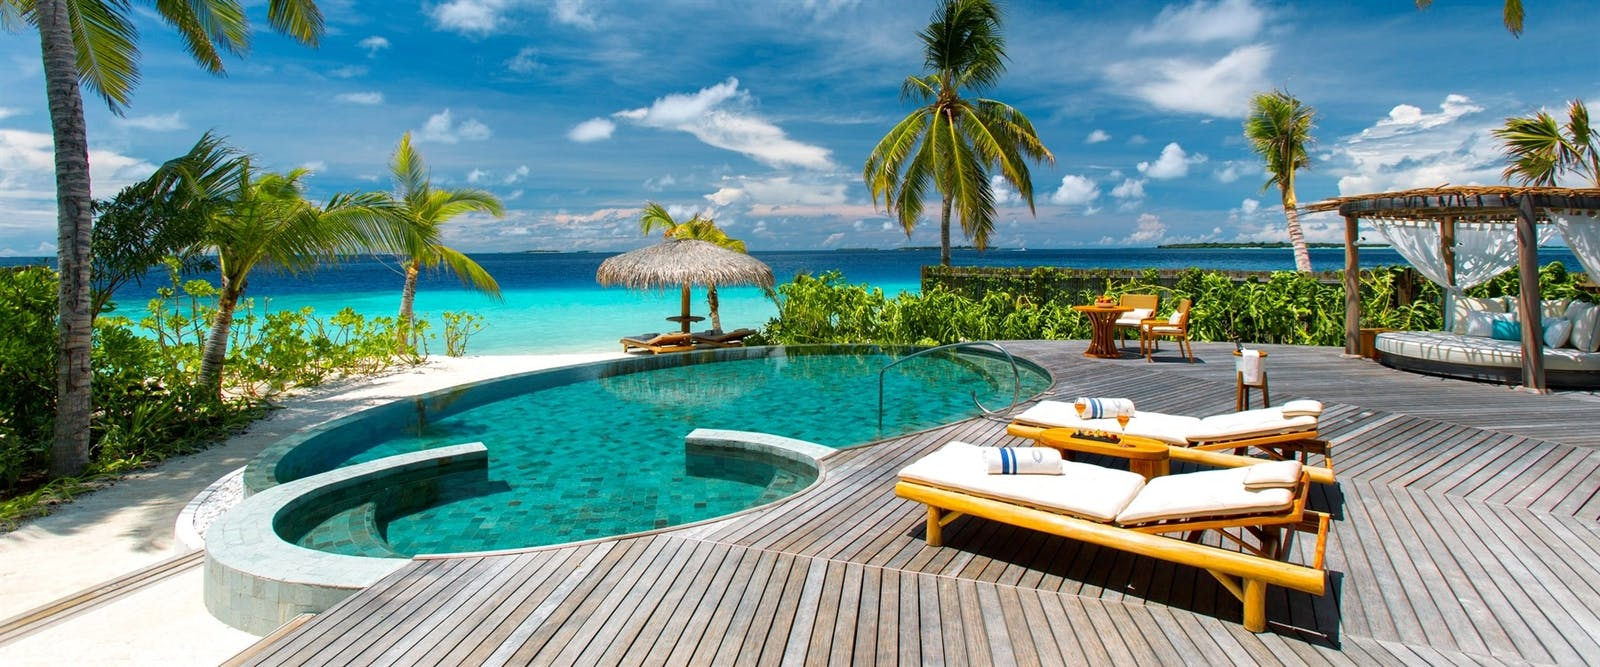 Beach Residence Pool at Milaidhoo, Maldives, Indian Ocean